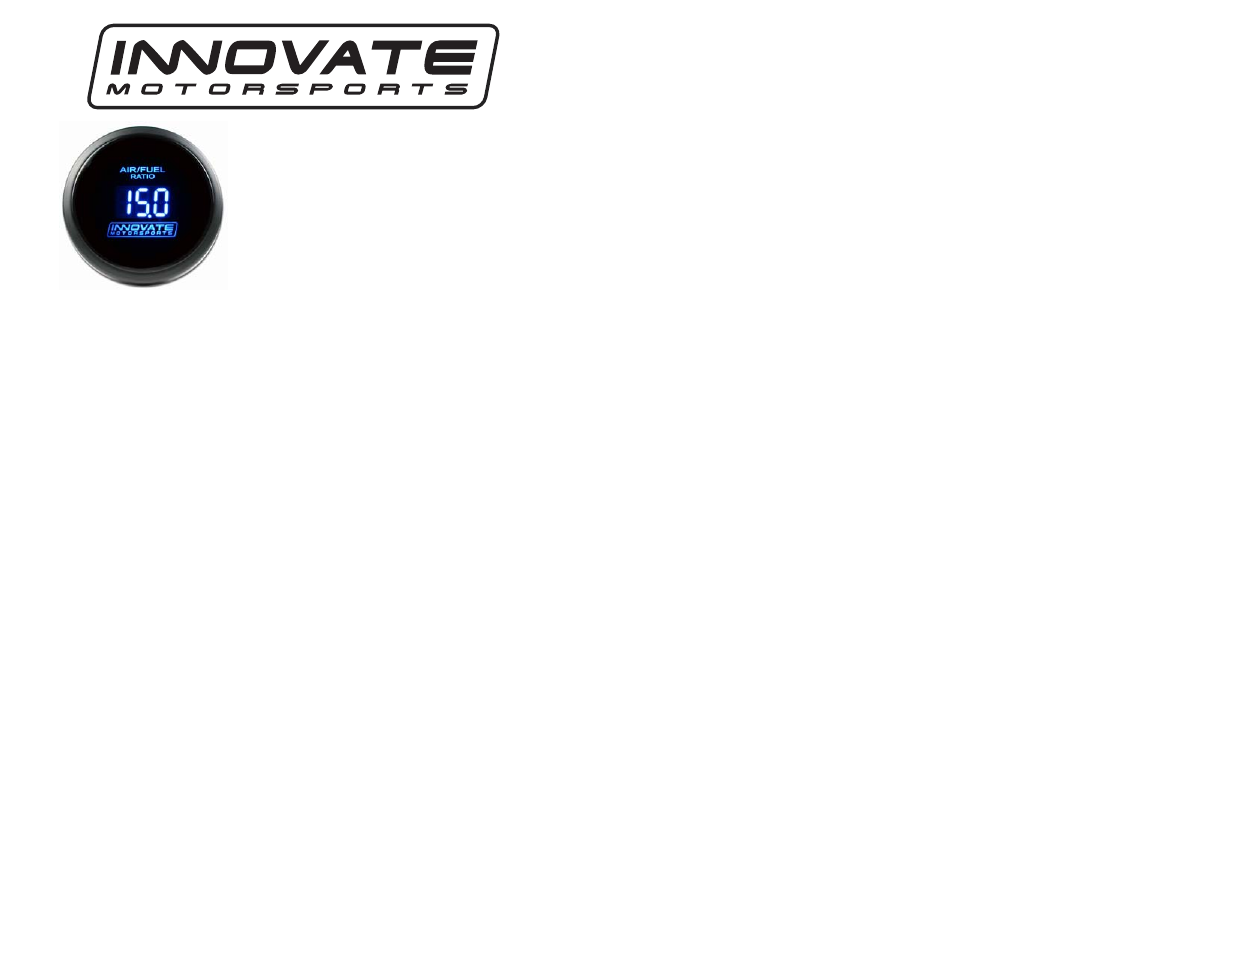 Innovate Motorsports Db Digital Air Fuel Gauge User Manual 1 Page Wiring A